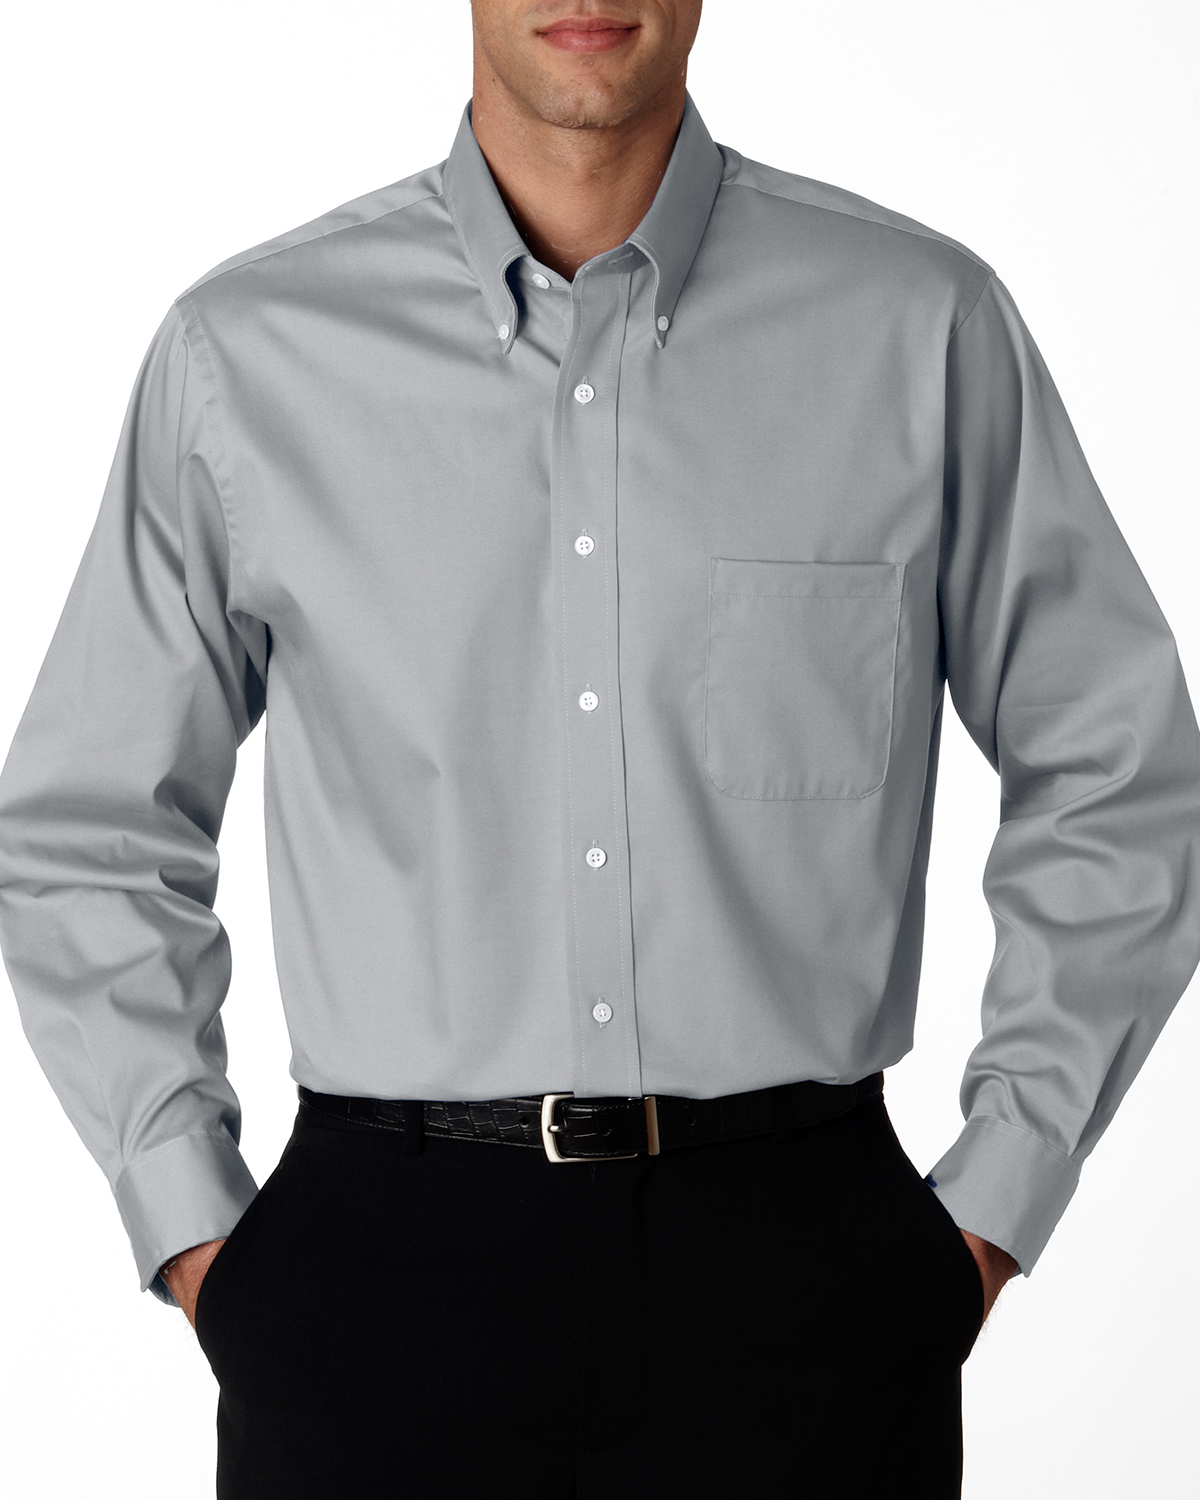 Van Heusen 56900  Men's Wrinkle-Resistant Blended Pinpoint ...